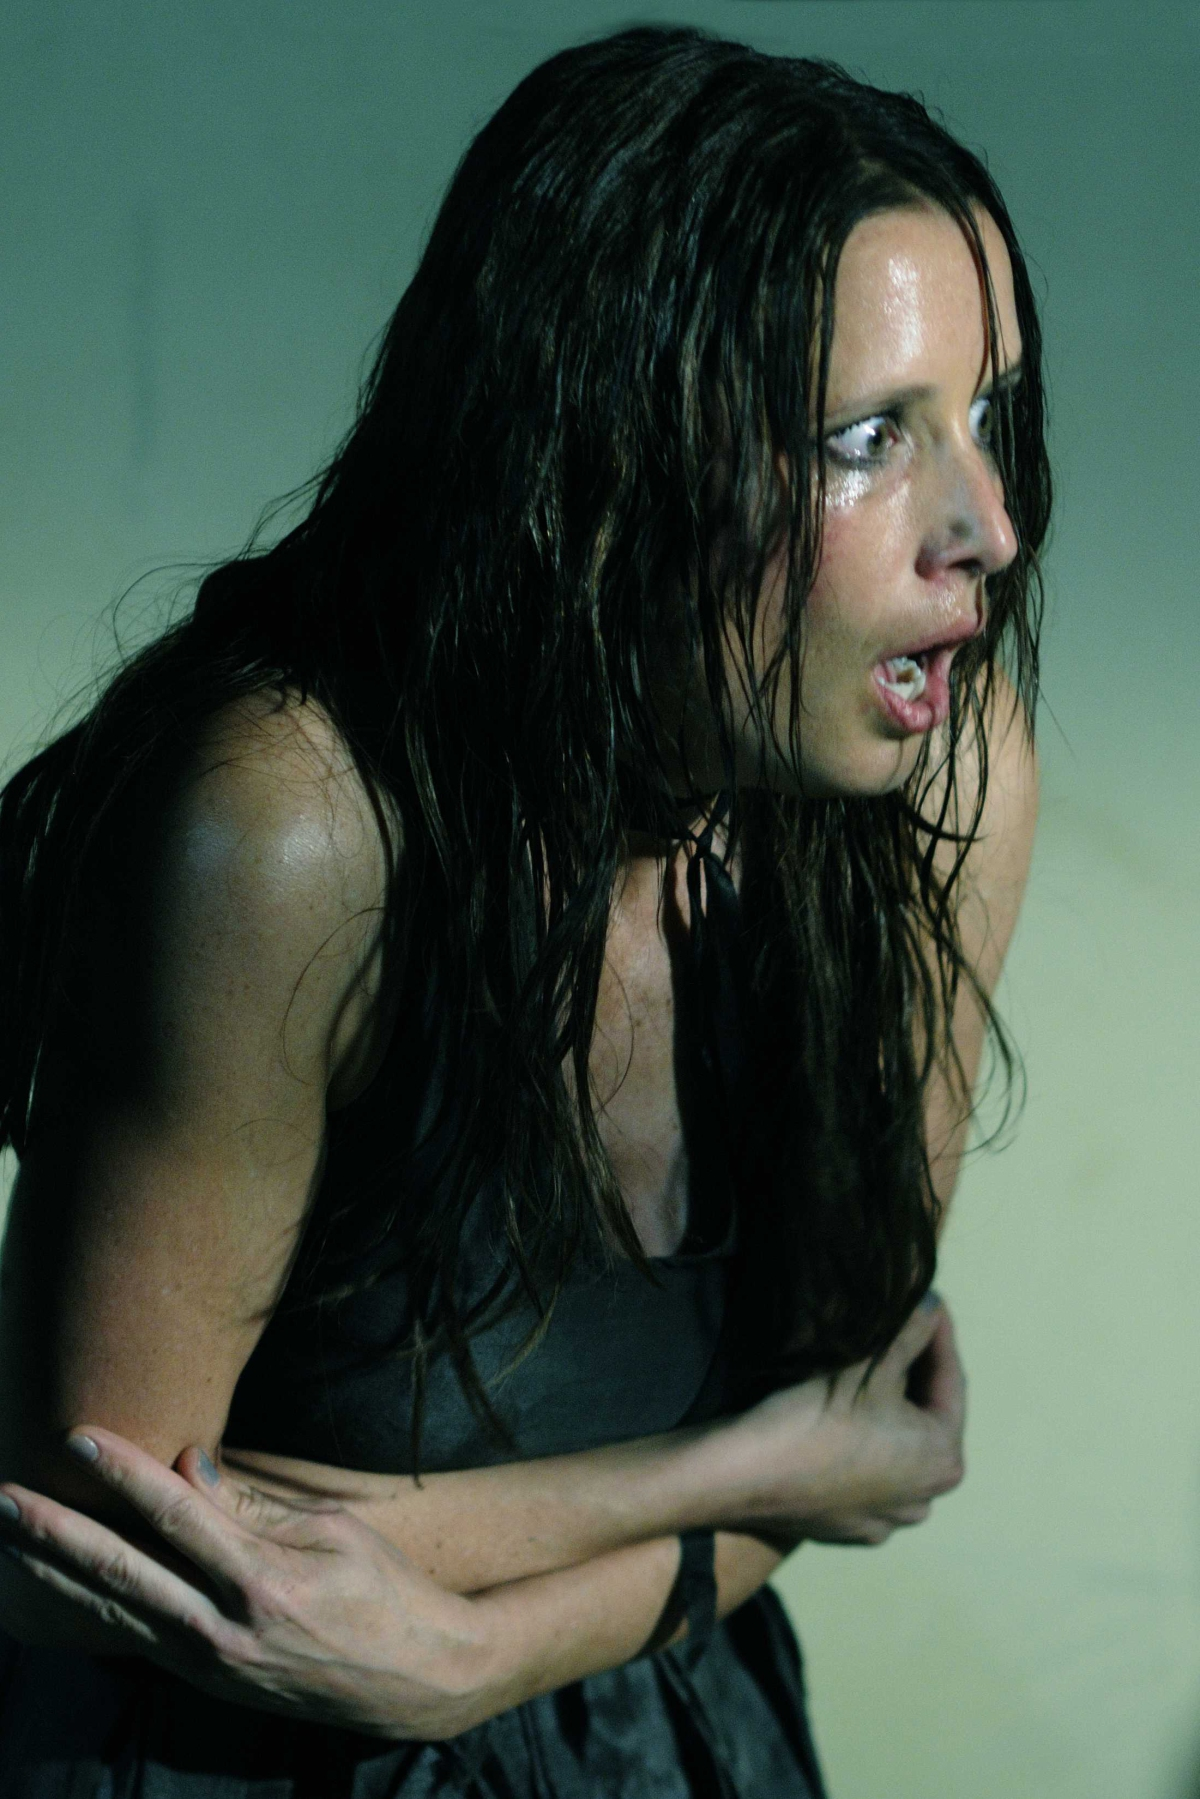 http://socialpsychol.files.wordpress.com/2011/07/shawnee_smith_31.jpg?w=1200